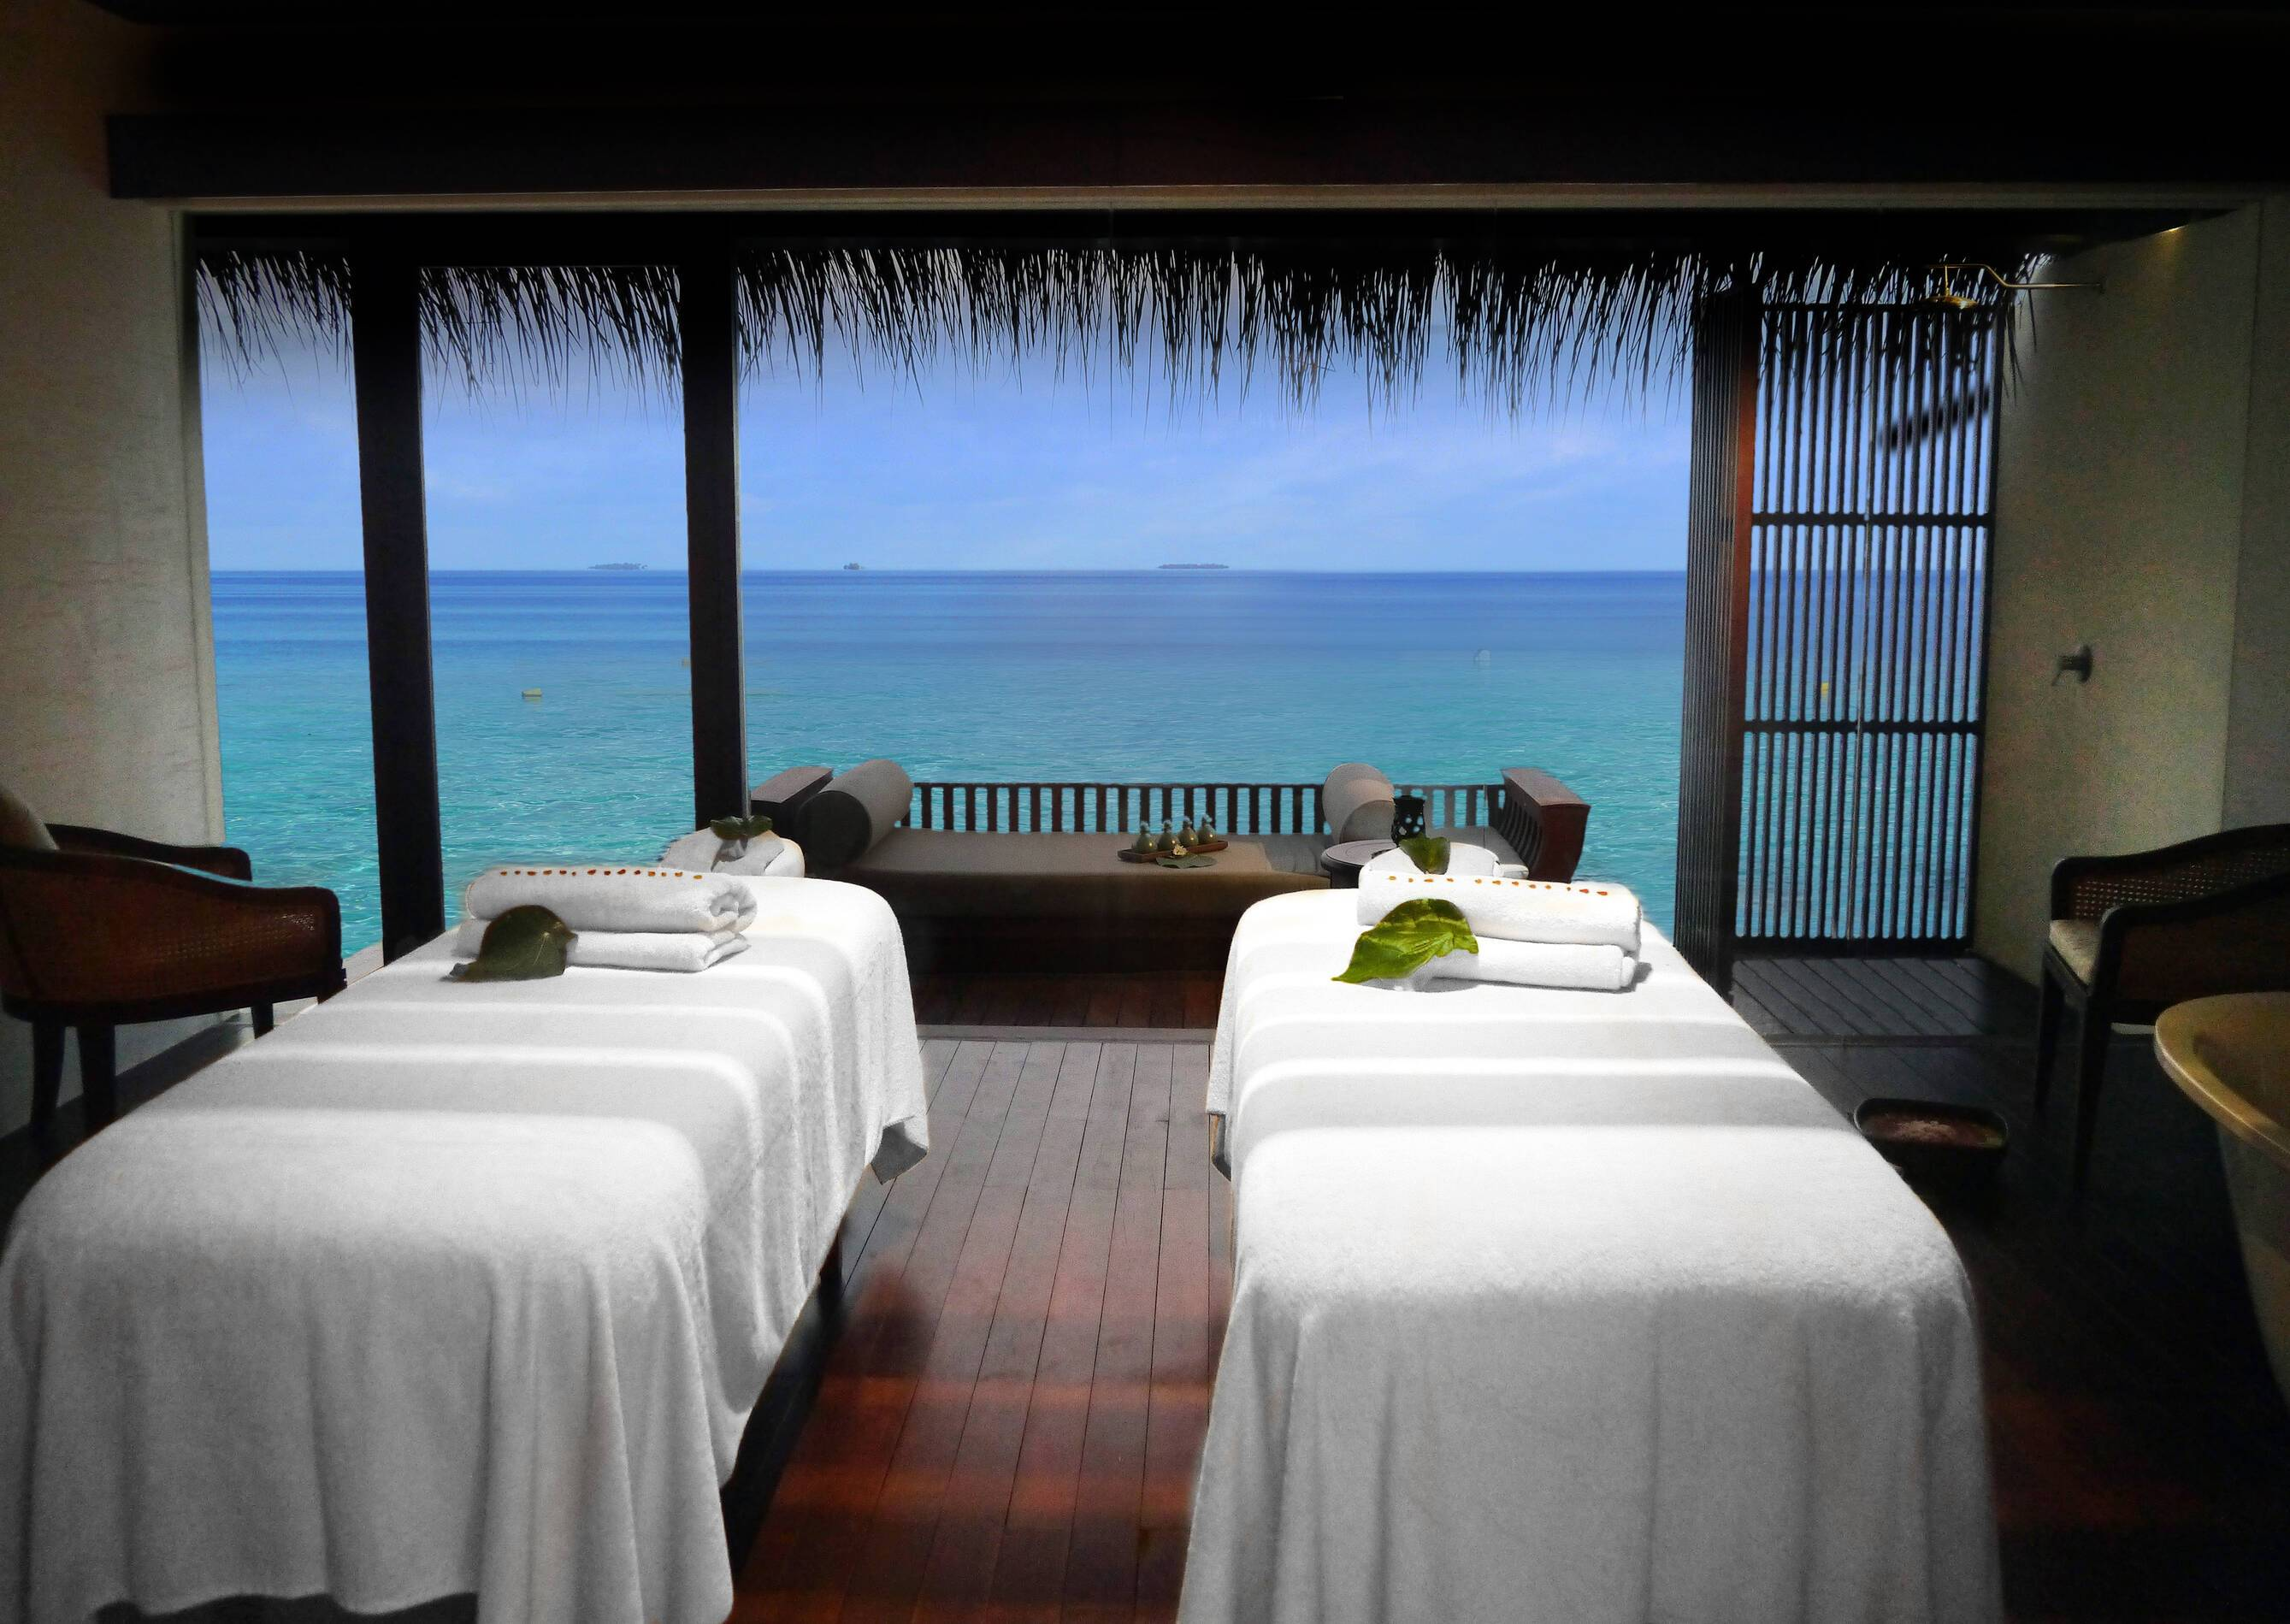 The Residence Spa Maldives